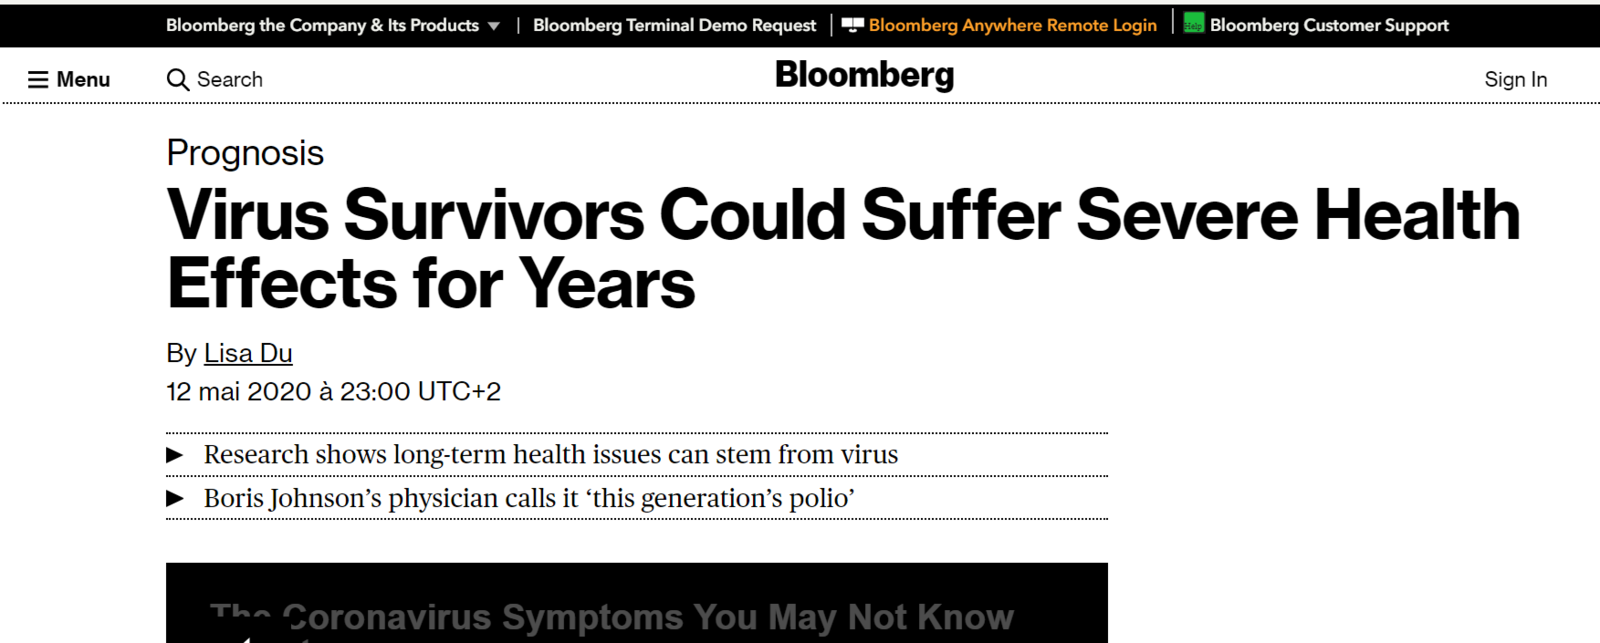 Article 12 mai 2020 - Bloomberg - Virus Survivors Could Suffer Severe Health Effects for Years